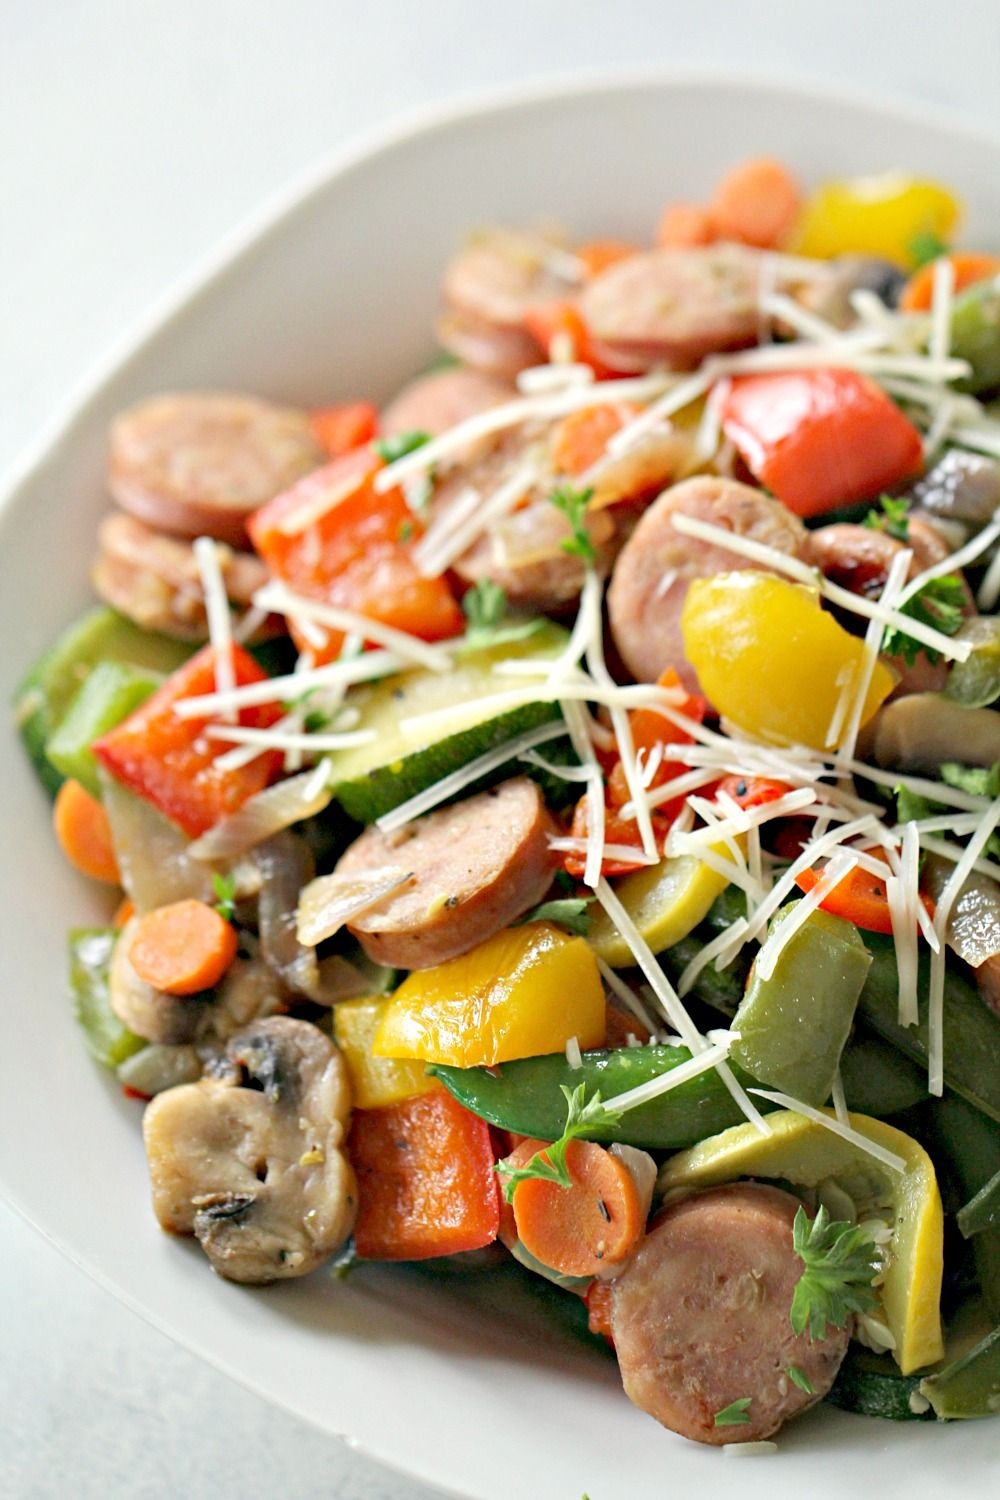 Low carb one pan chicken sausage and vegetables recipe